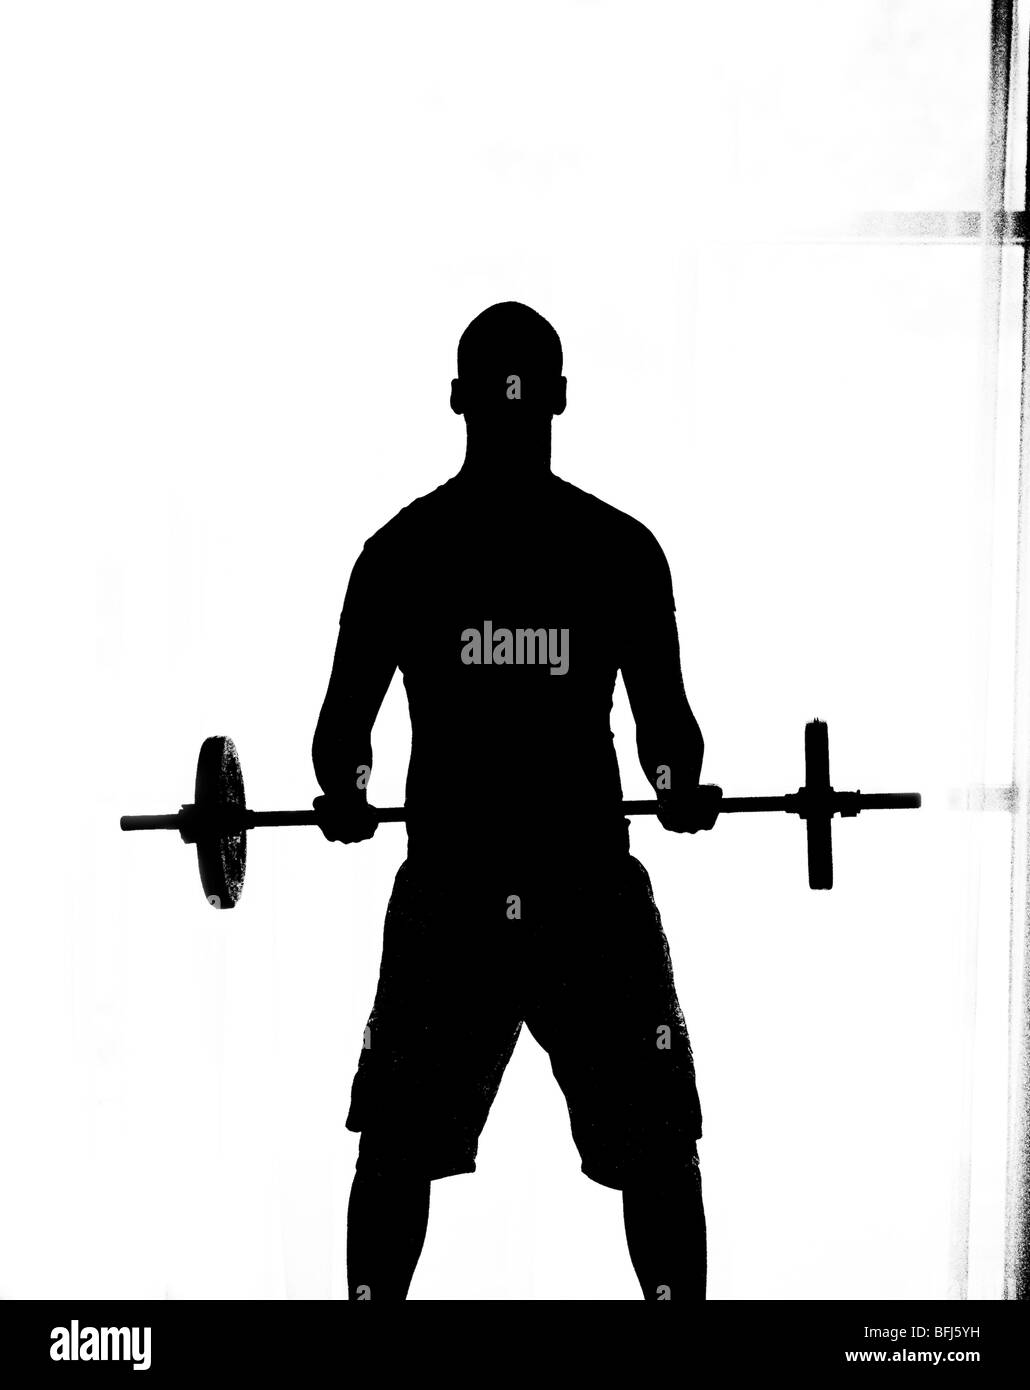 The silhouette of a man weight-lifting, Sweden. - Stock Image